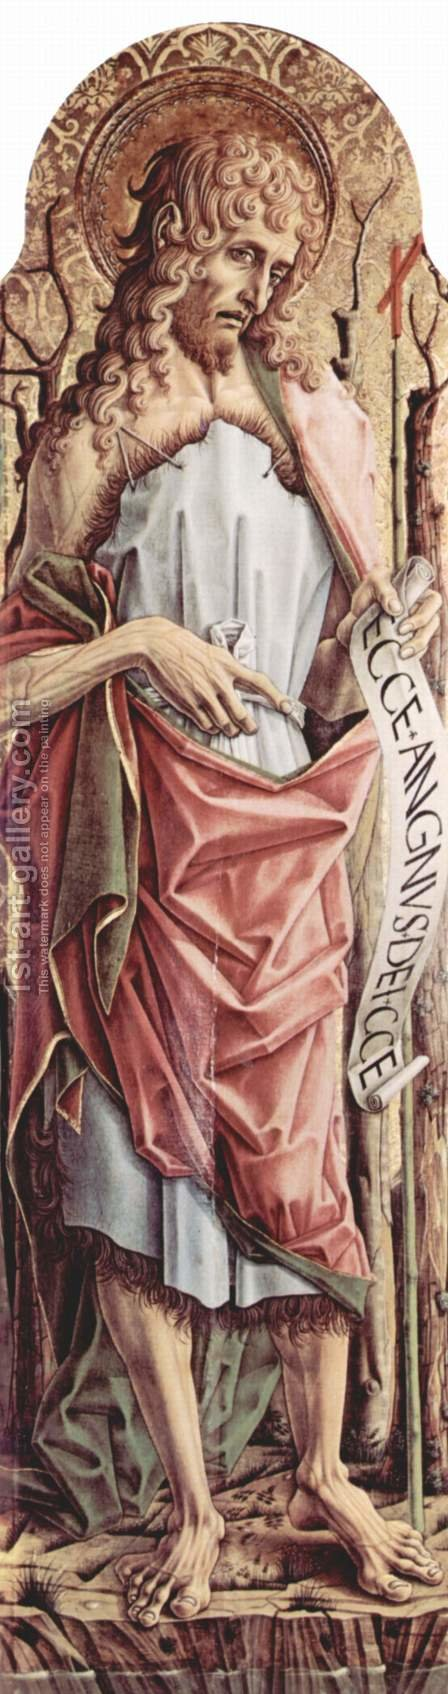 Main altar of the Cathedral of Ascoli, polyptych, left inner panel of St. John the Baptist by Carlo Crivelli - Reproduction Oil Painting